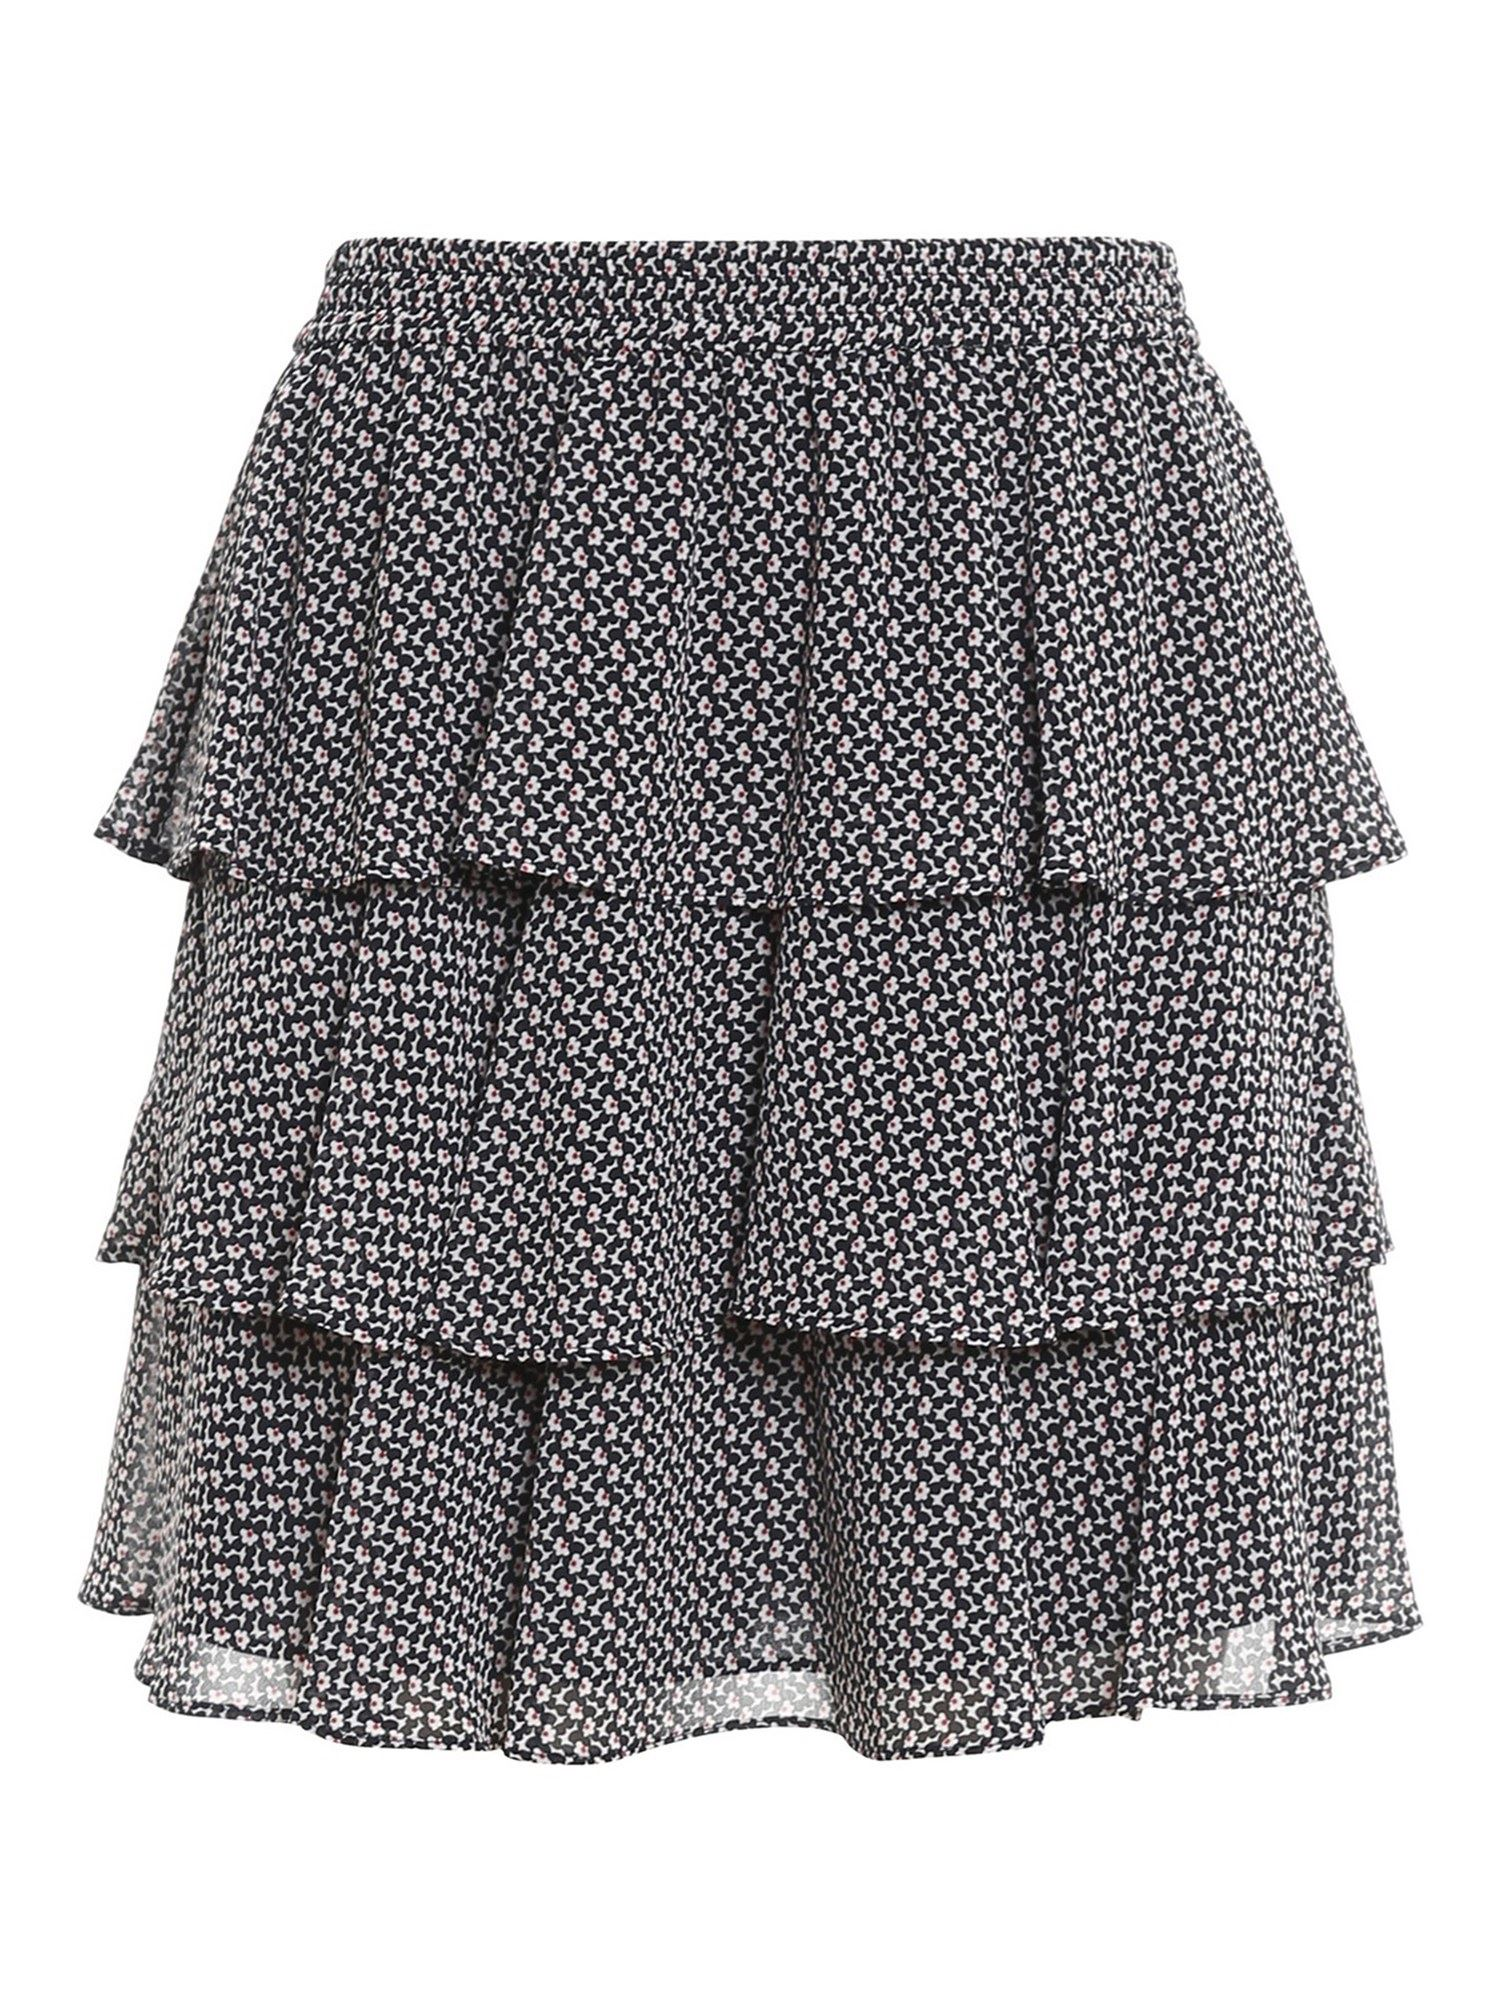 Michael Kors FLORAL PATTERNED CRÊPE MINI SKIRT IN BLUE